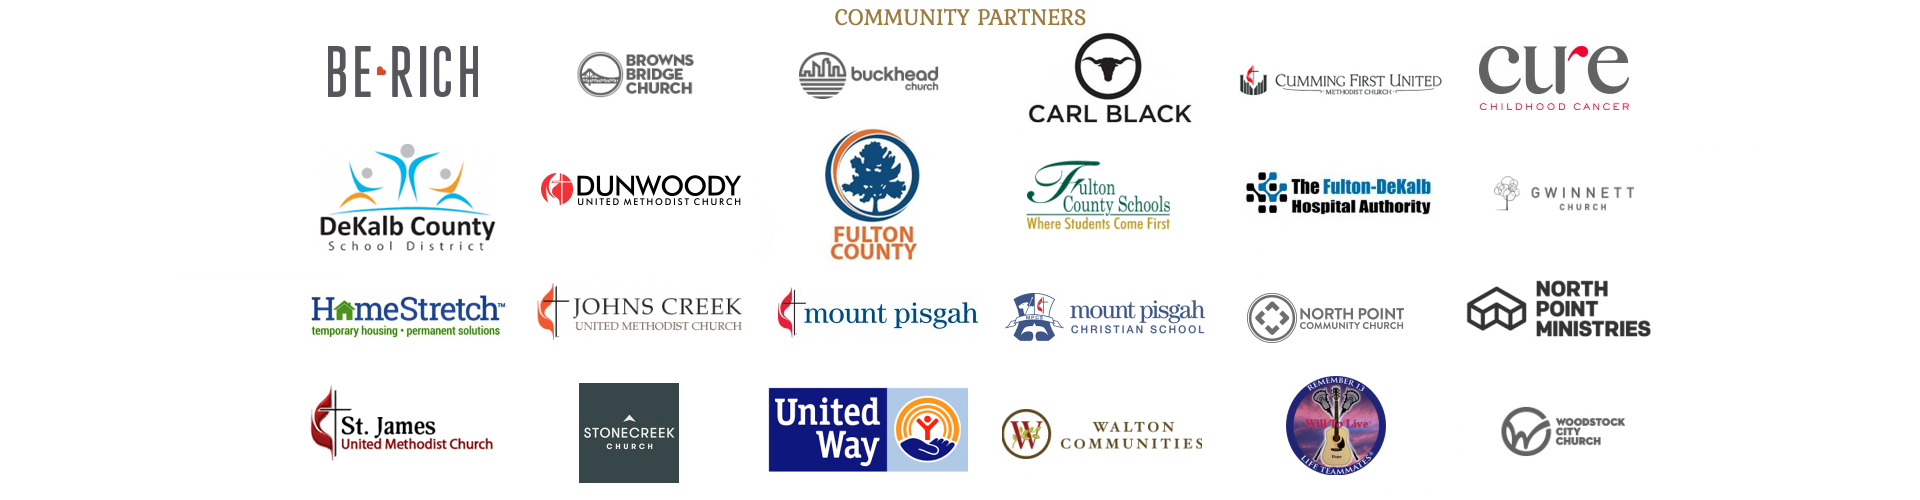 summit_community_partners_banner_REVISED2